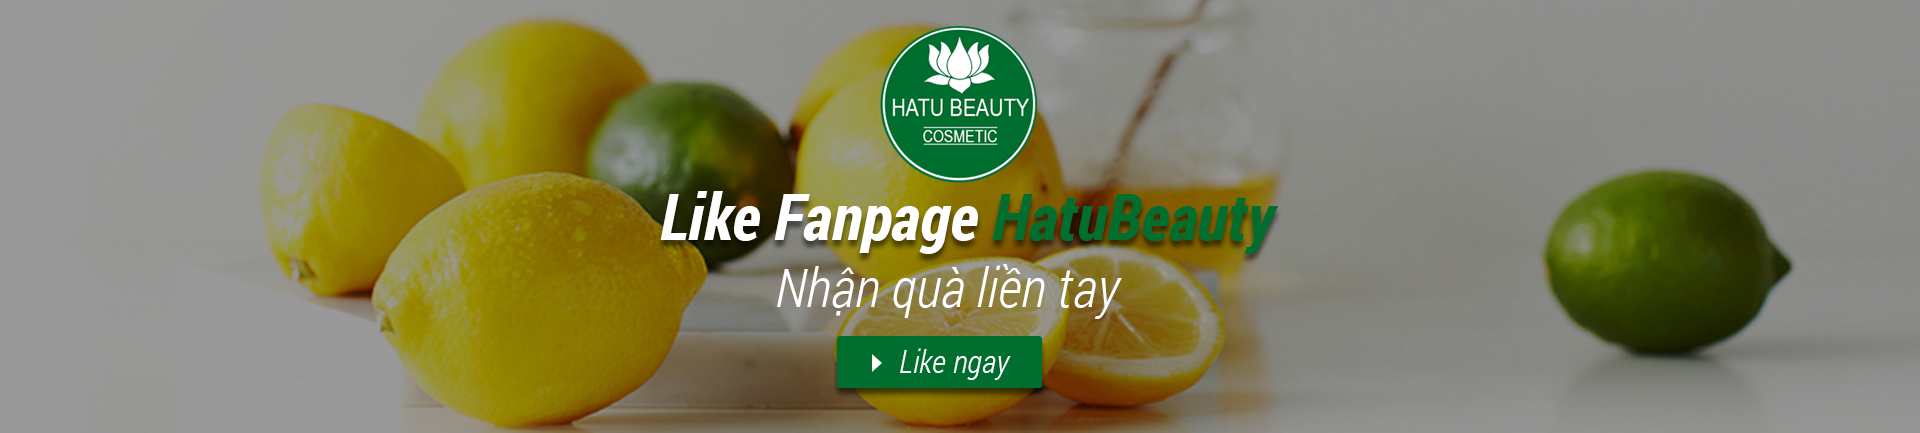 Like Fanpage Hatu Beauty